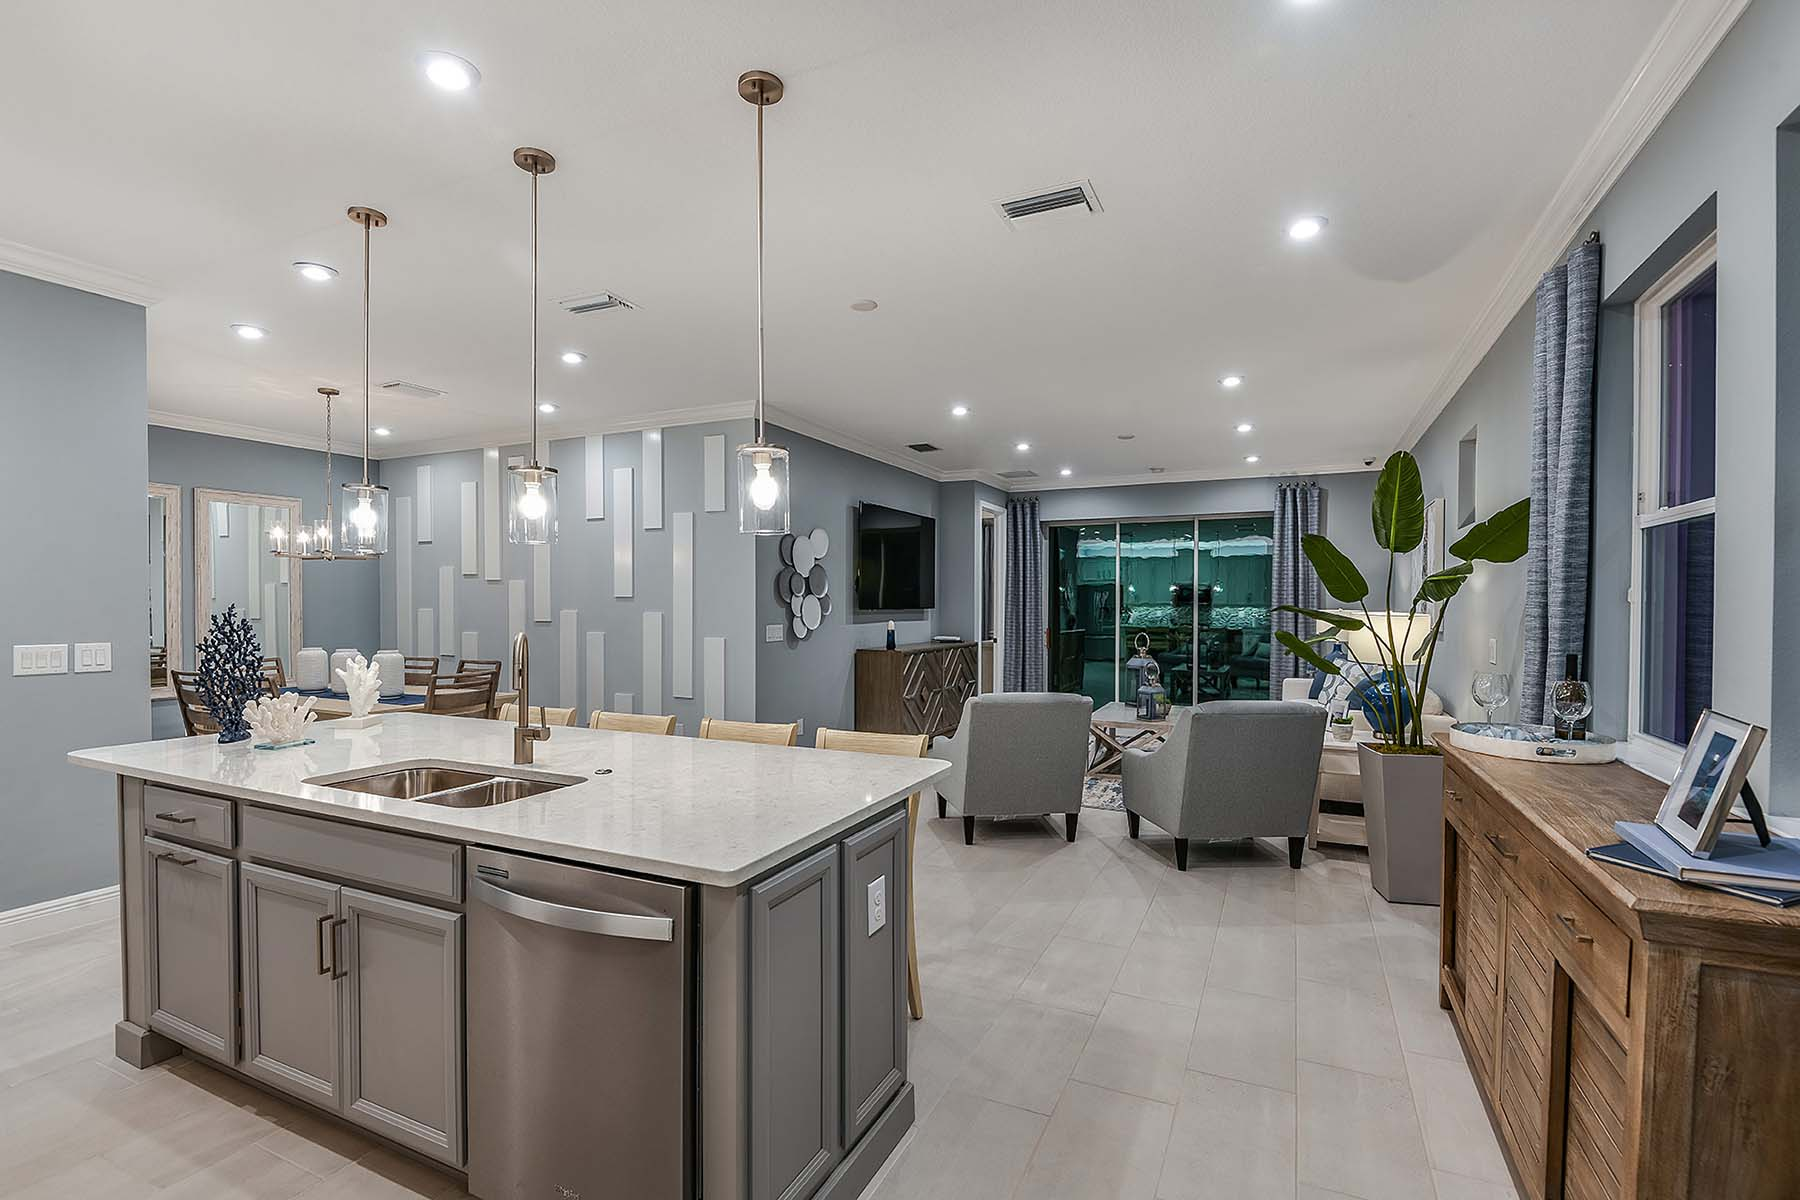 Oceana Plan Interior Others at Bonavie Cove in Fort Myers Florida by Mattamy Homes